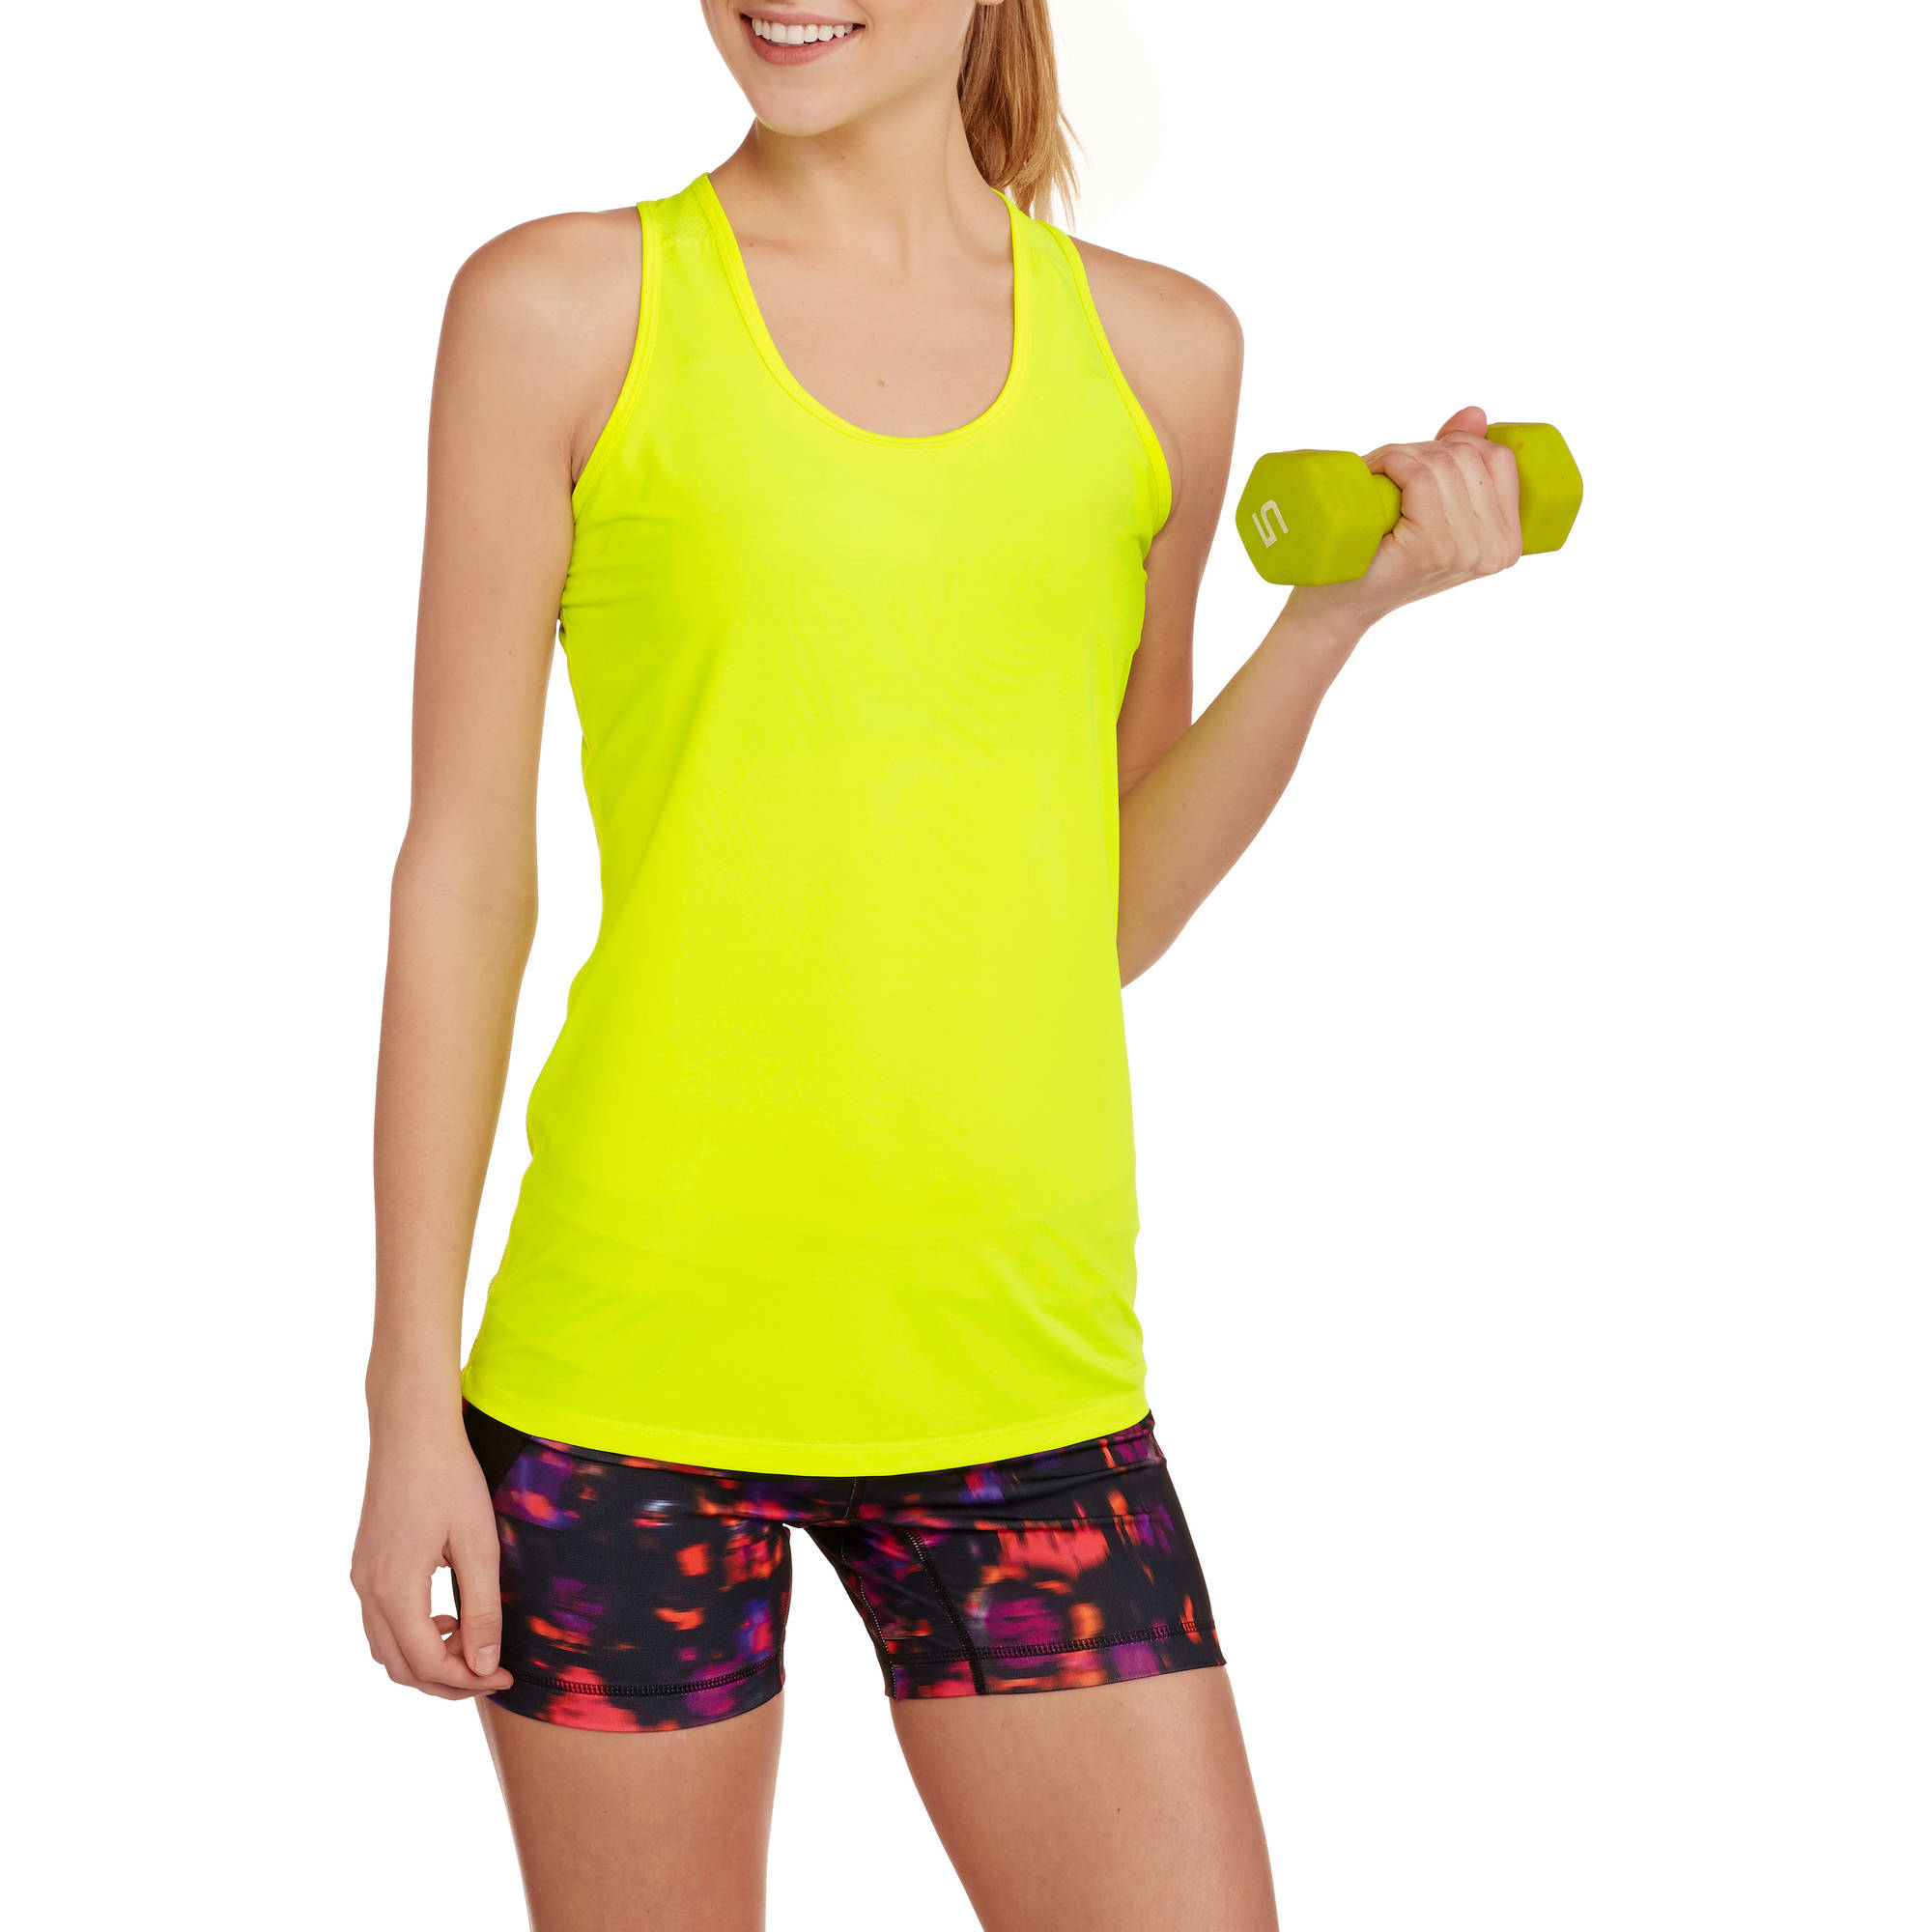 Danskin Now Women's Active Performance Mesh Racerback Tank